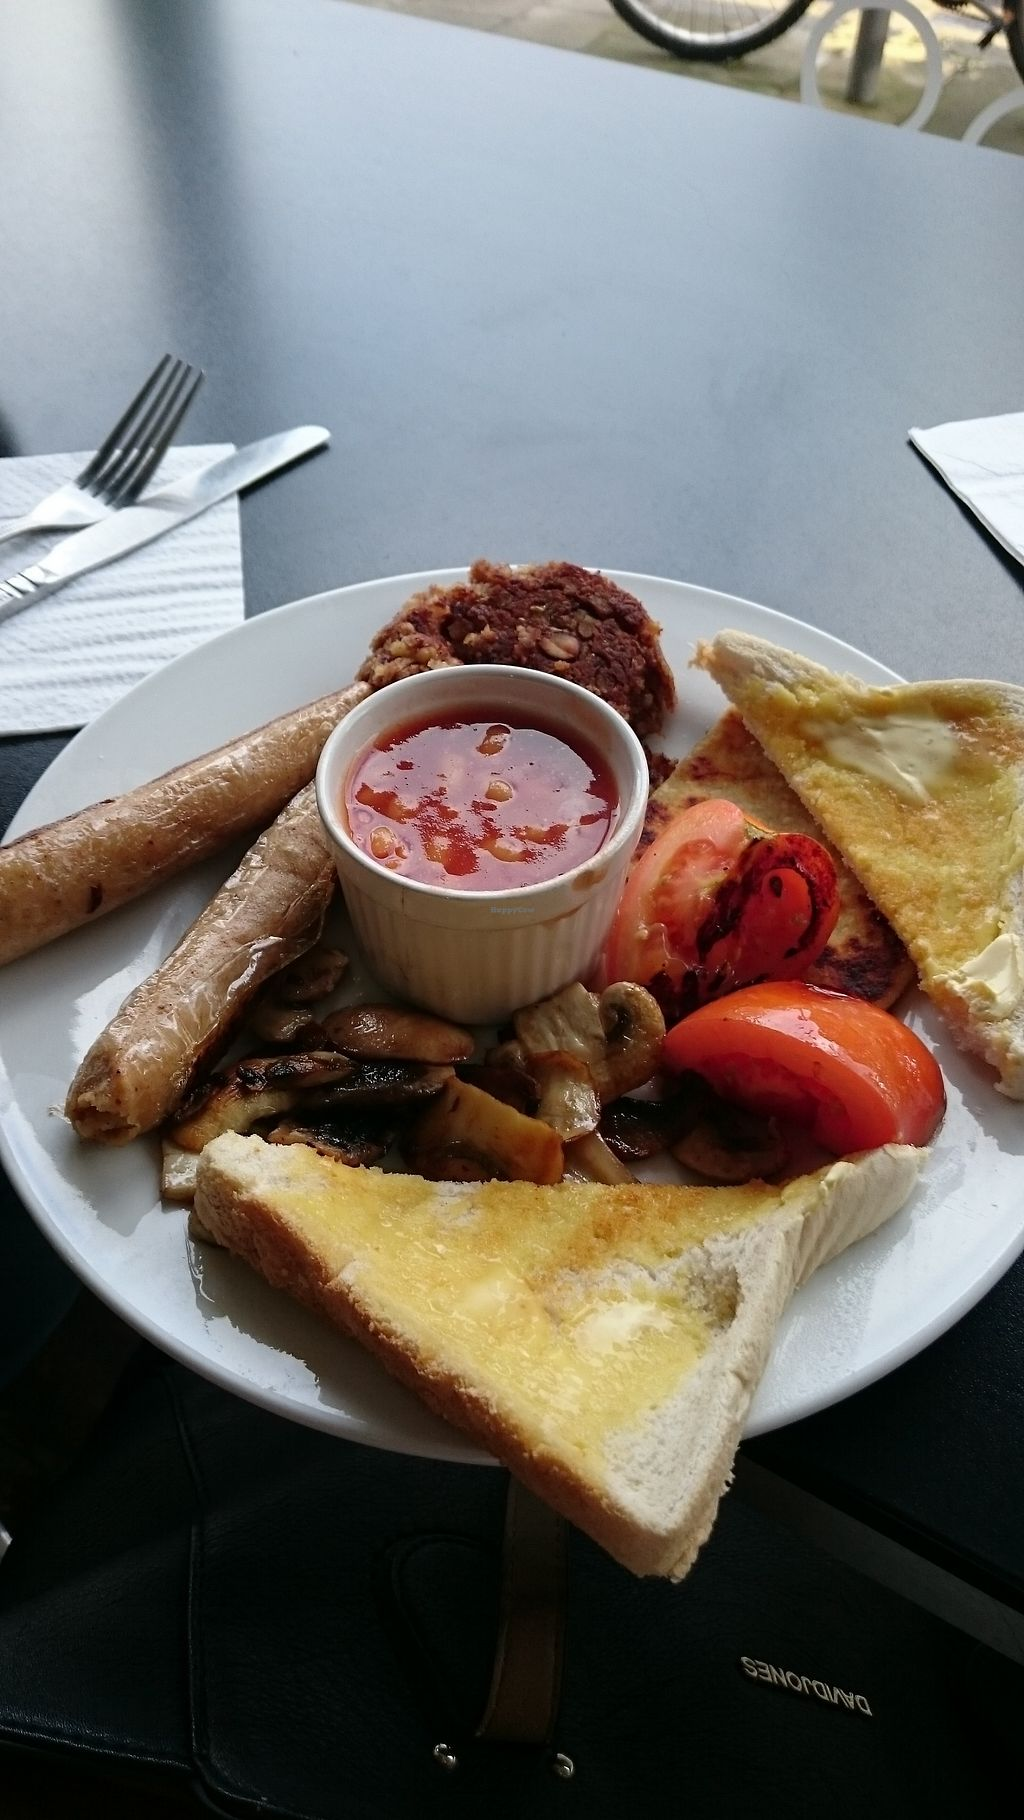 """Photo of Breakfast Brunch and Lunch  by <a href=""""/members/profile/Layra"""">Layra</a> <br/>Vegan breakfast <br/> October 24, 2017  - <a href='/contact/abuse/image/72133/318267'>Report</a>"""